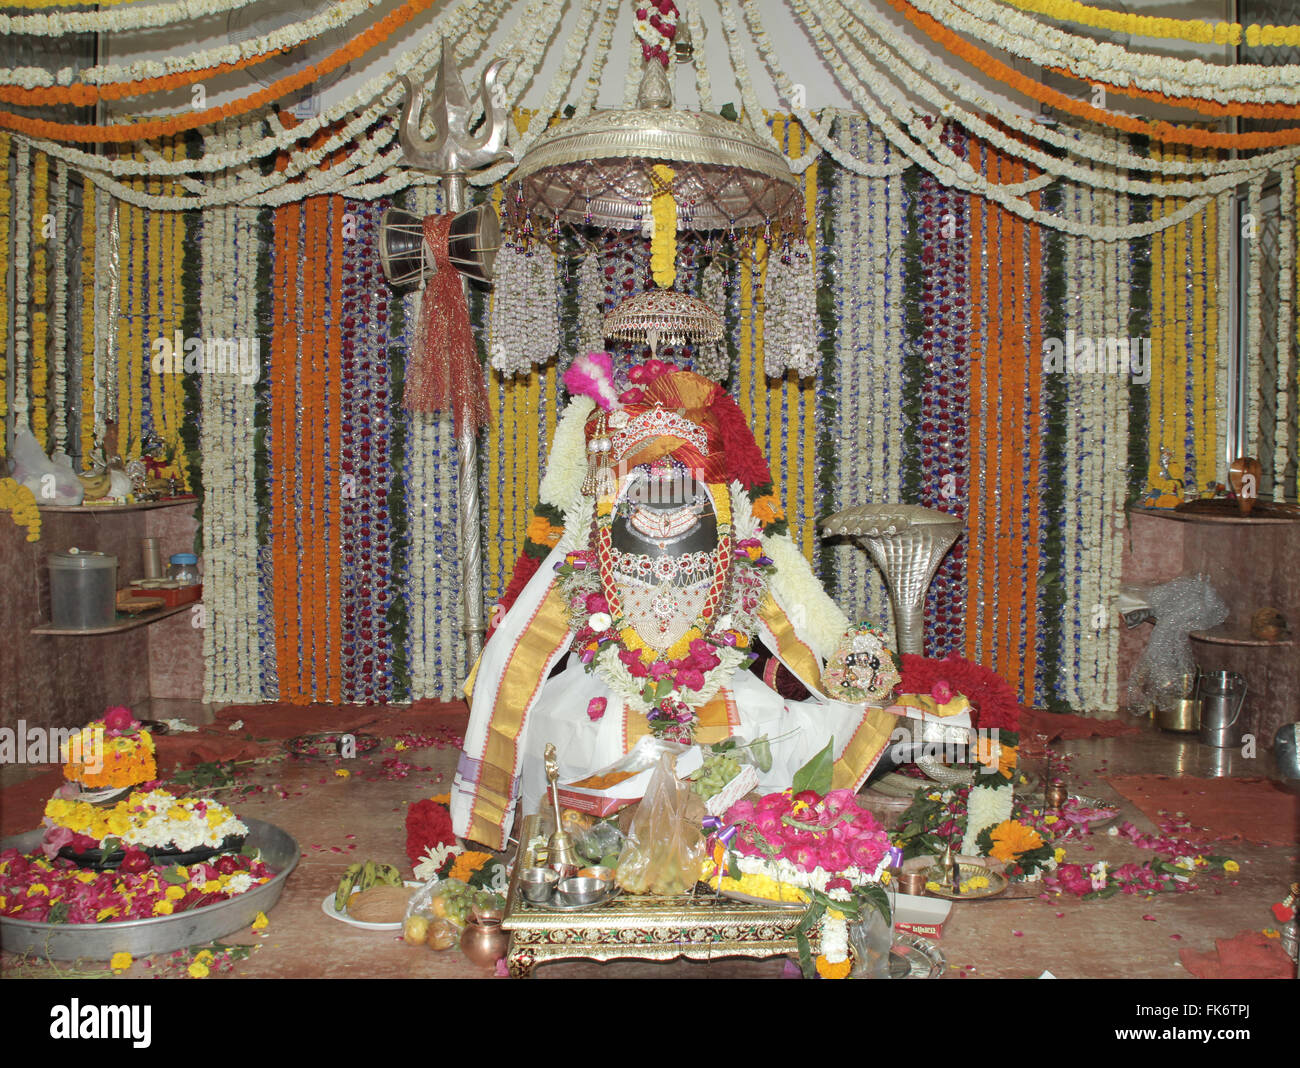 Jabalpur, India. 07th Mar, 2016. Hindu devotees decorate to 'Lord Shiva' like a Bridegroom on the ocation - Stock Image